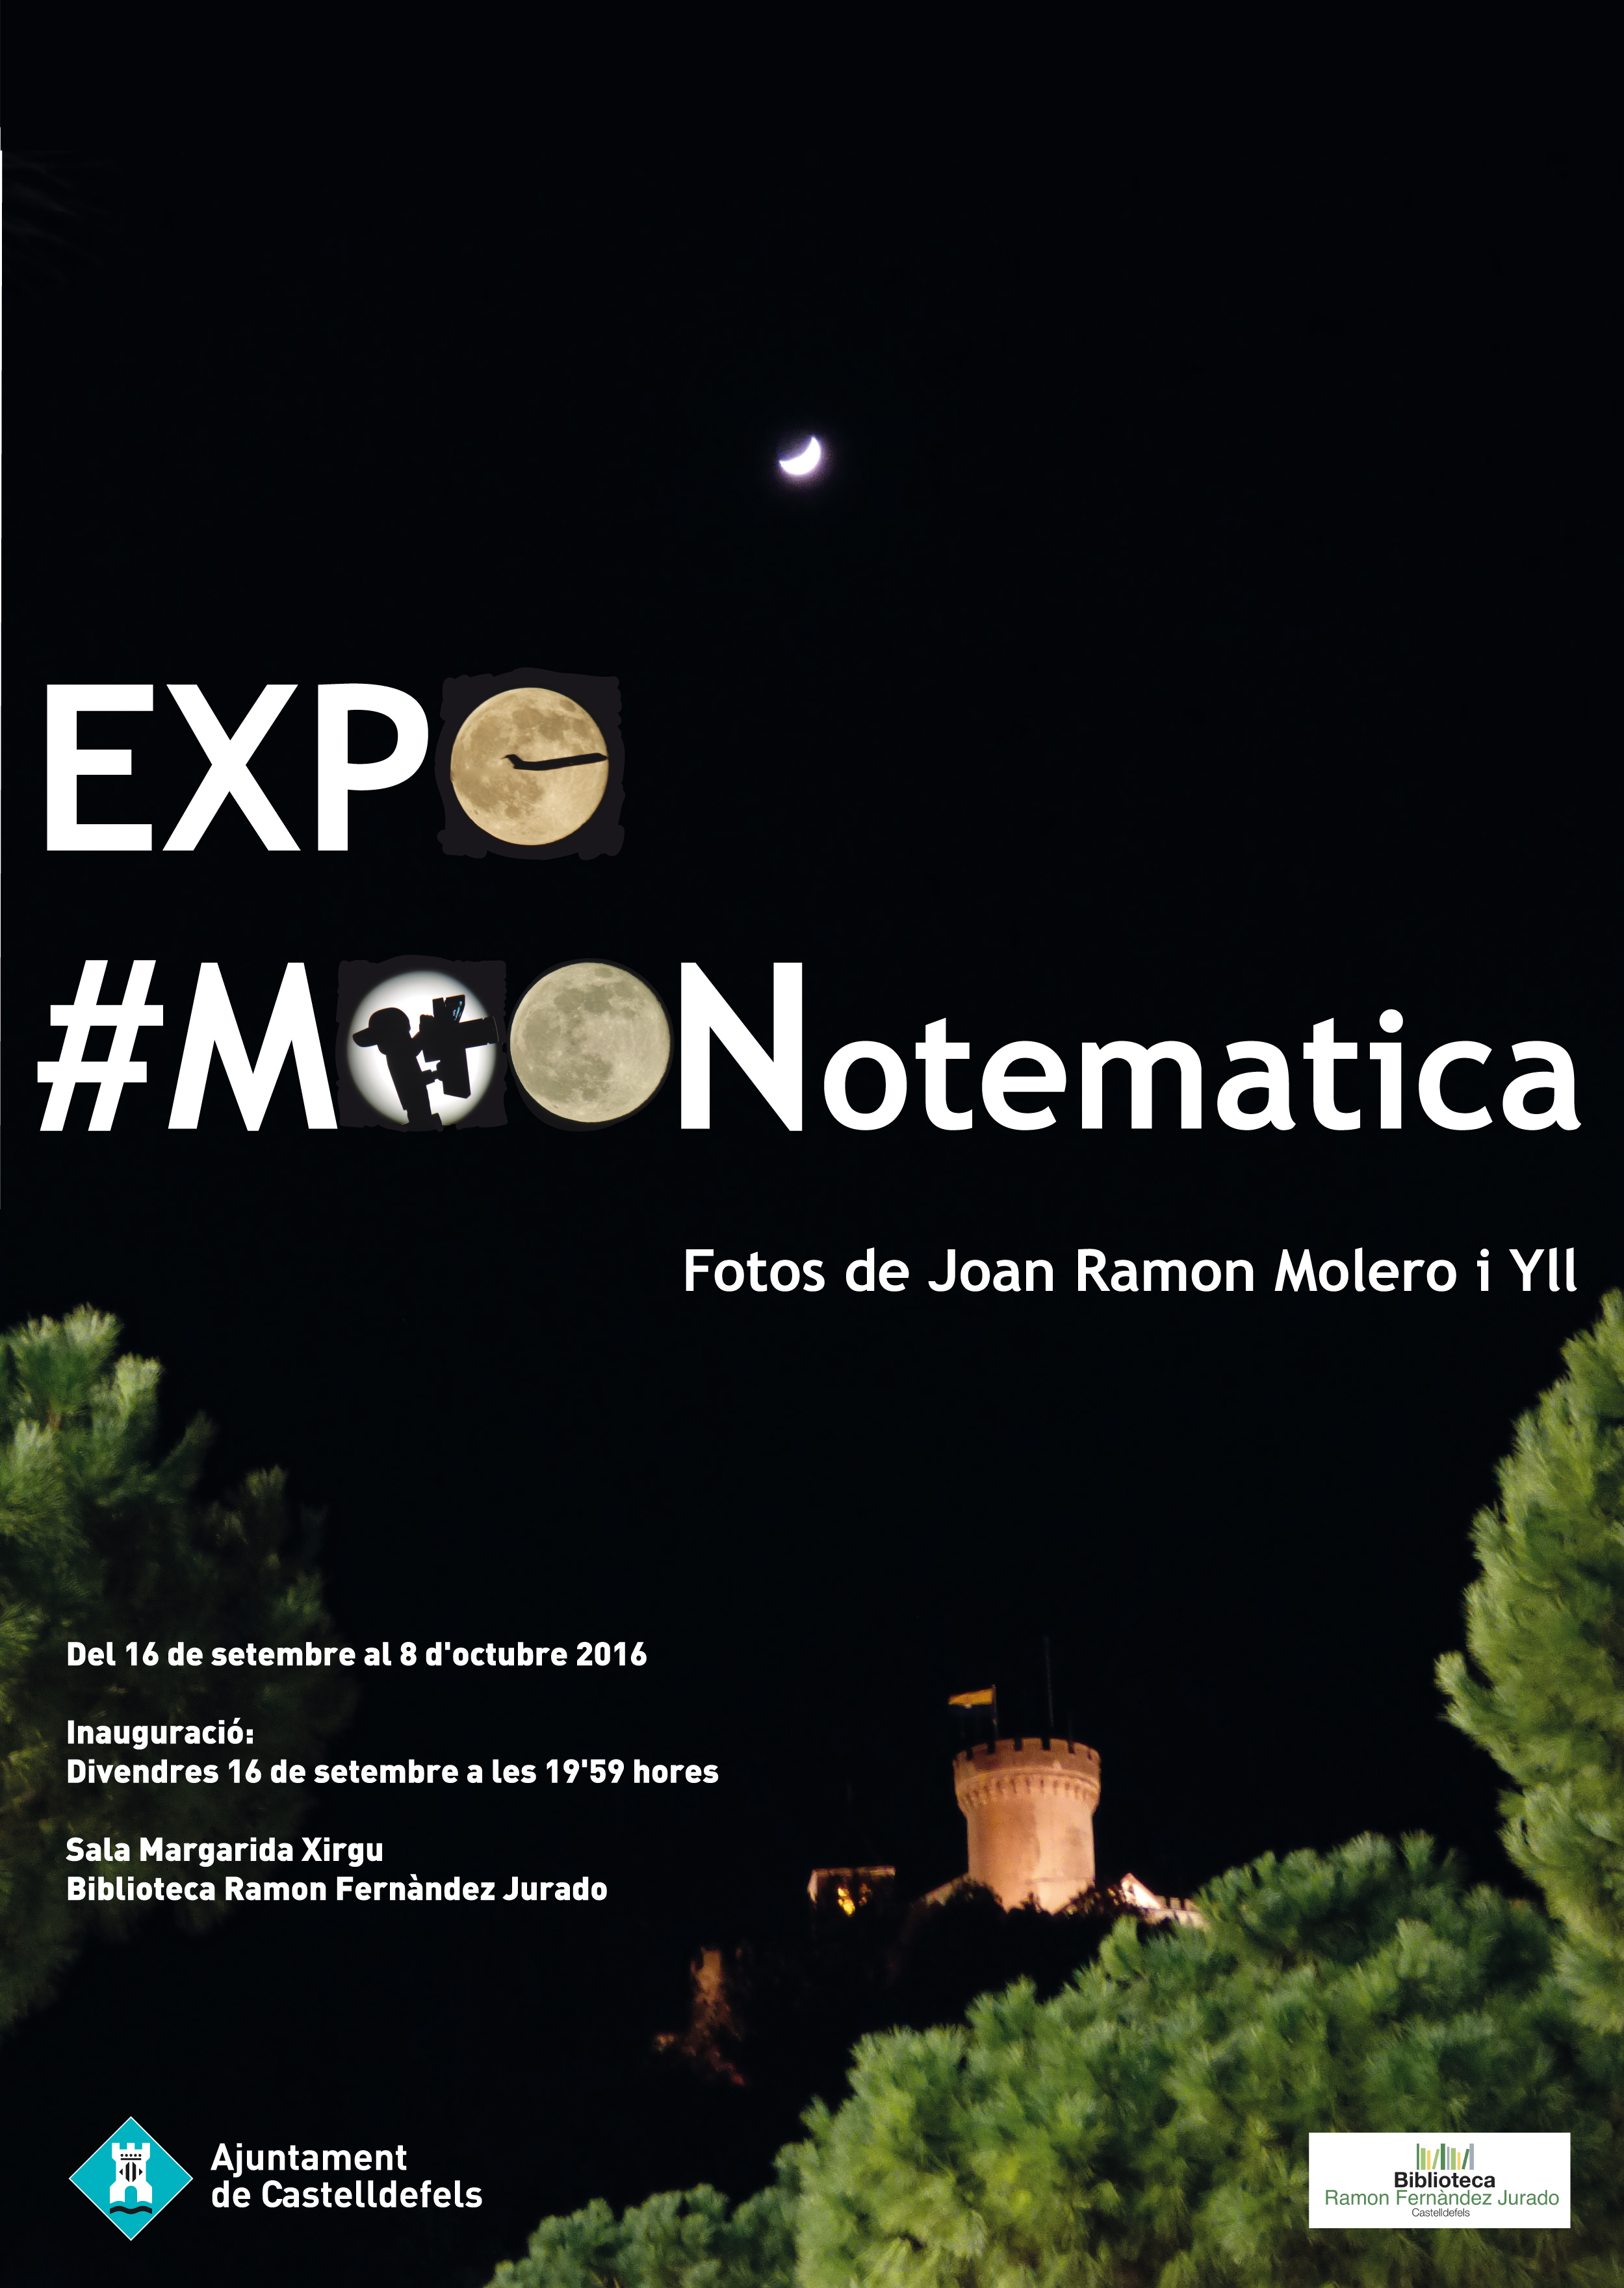 expomoonotematica_poster_vdef-1